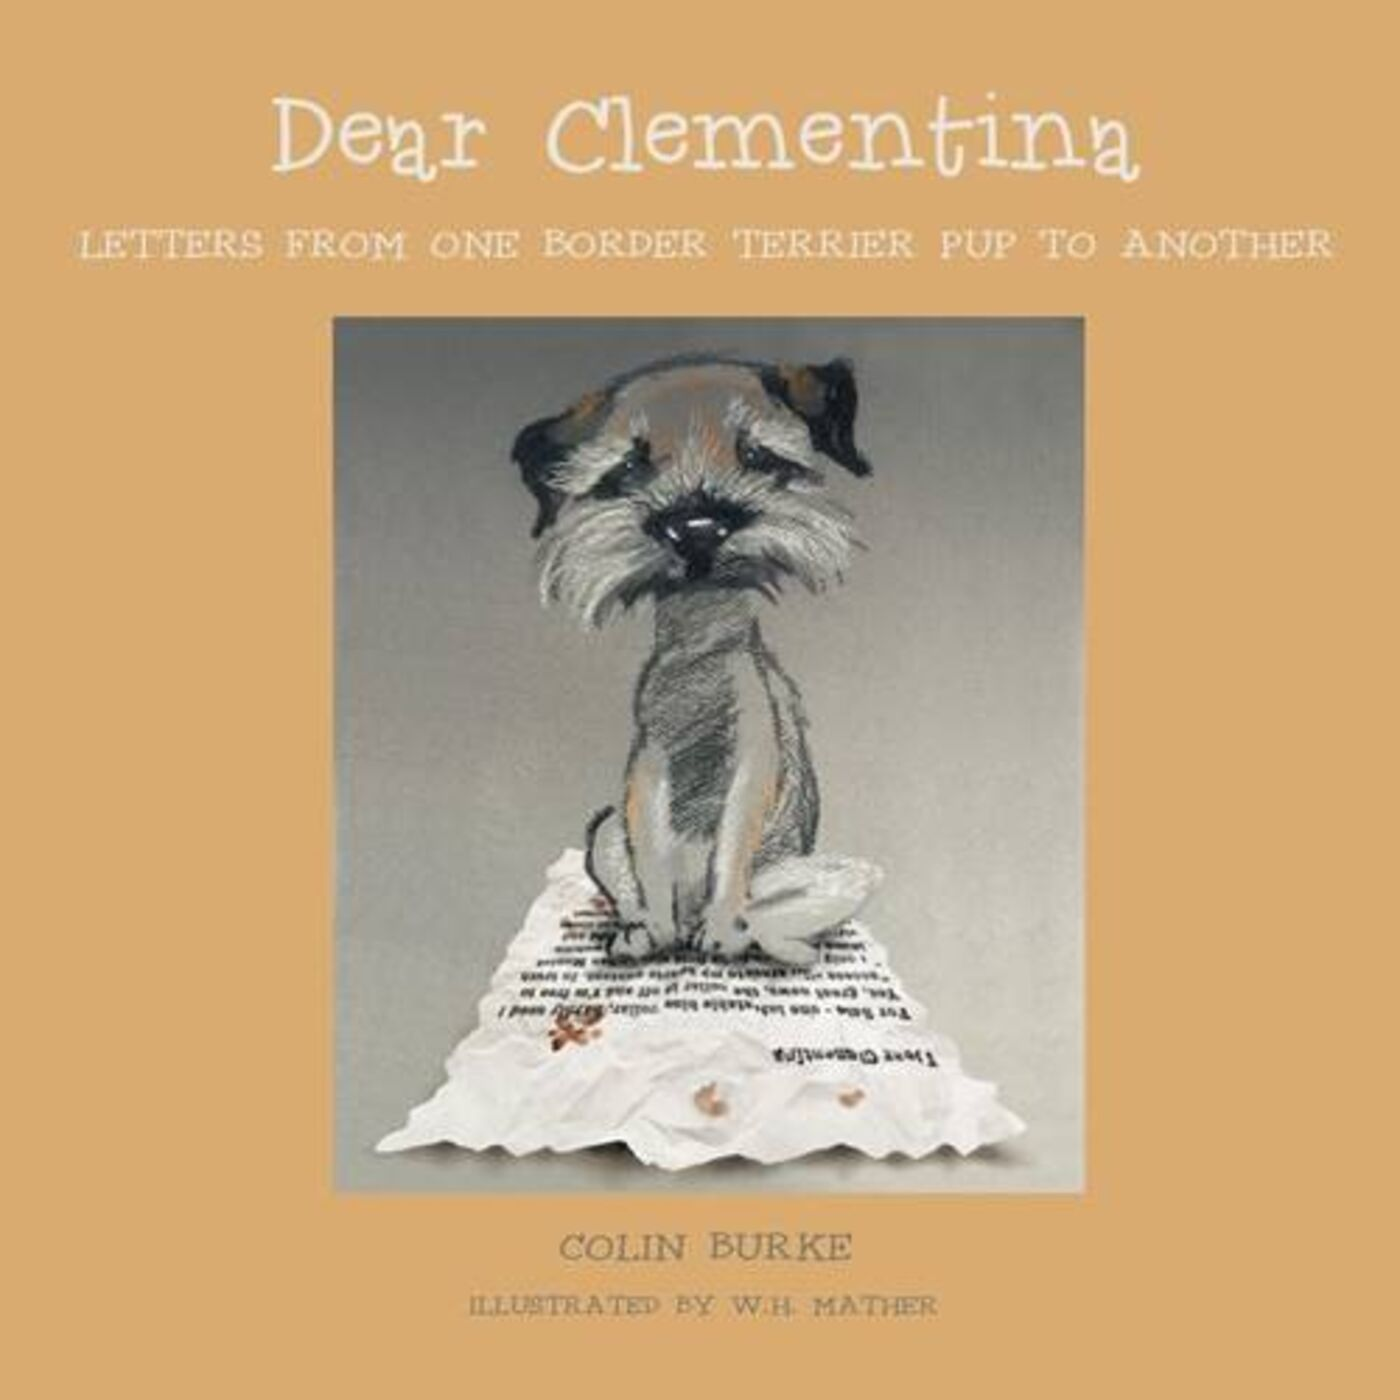 Dear Clementina Chapter 21 - Cats What Are They Like